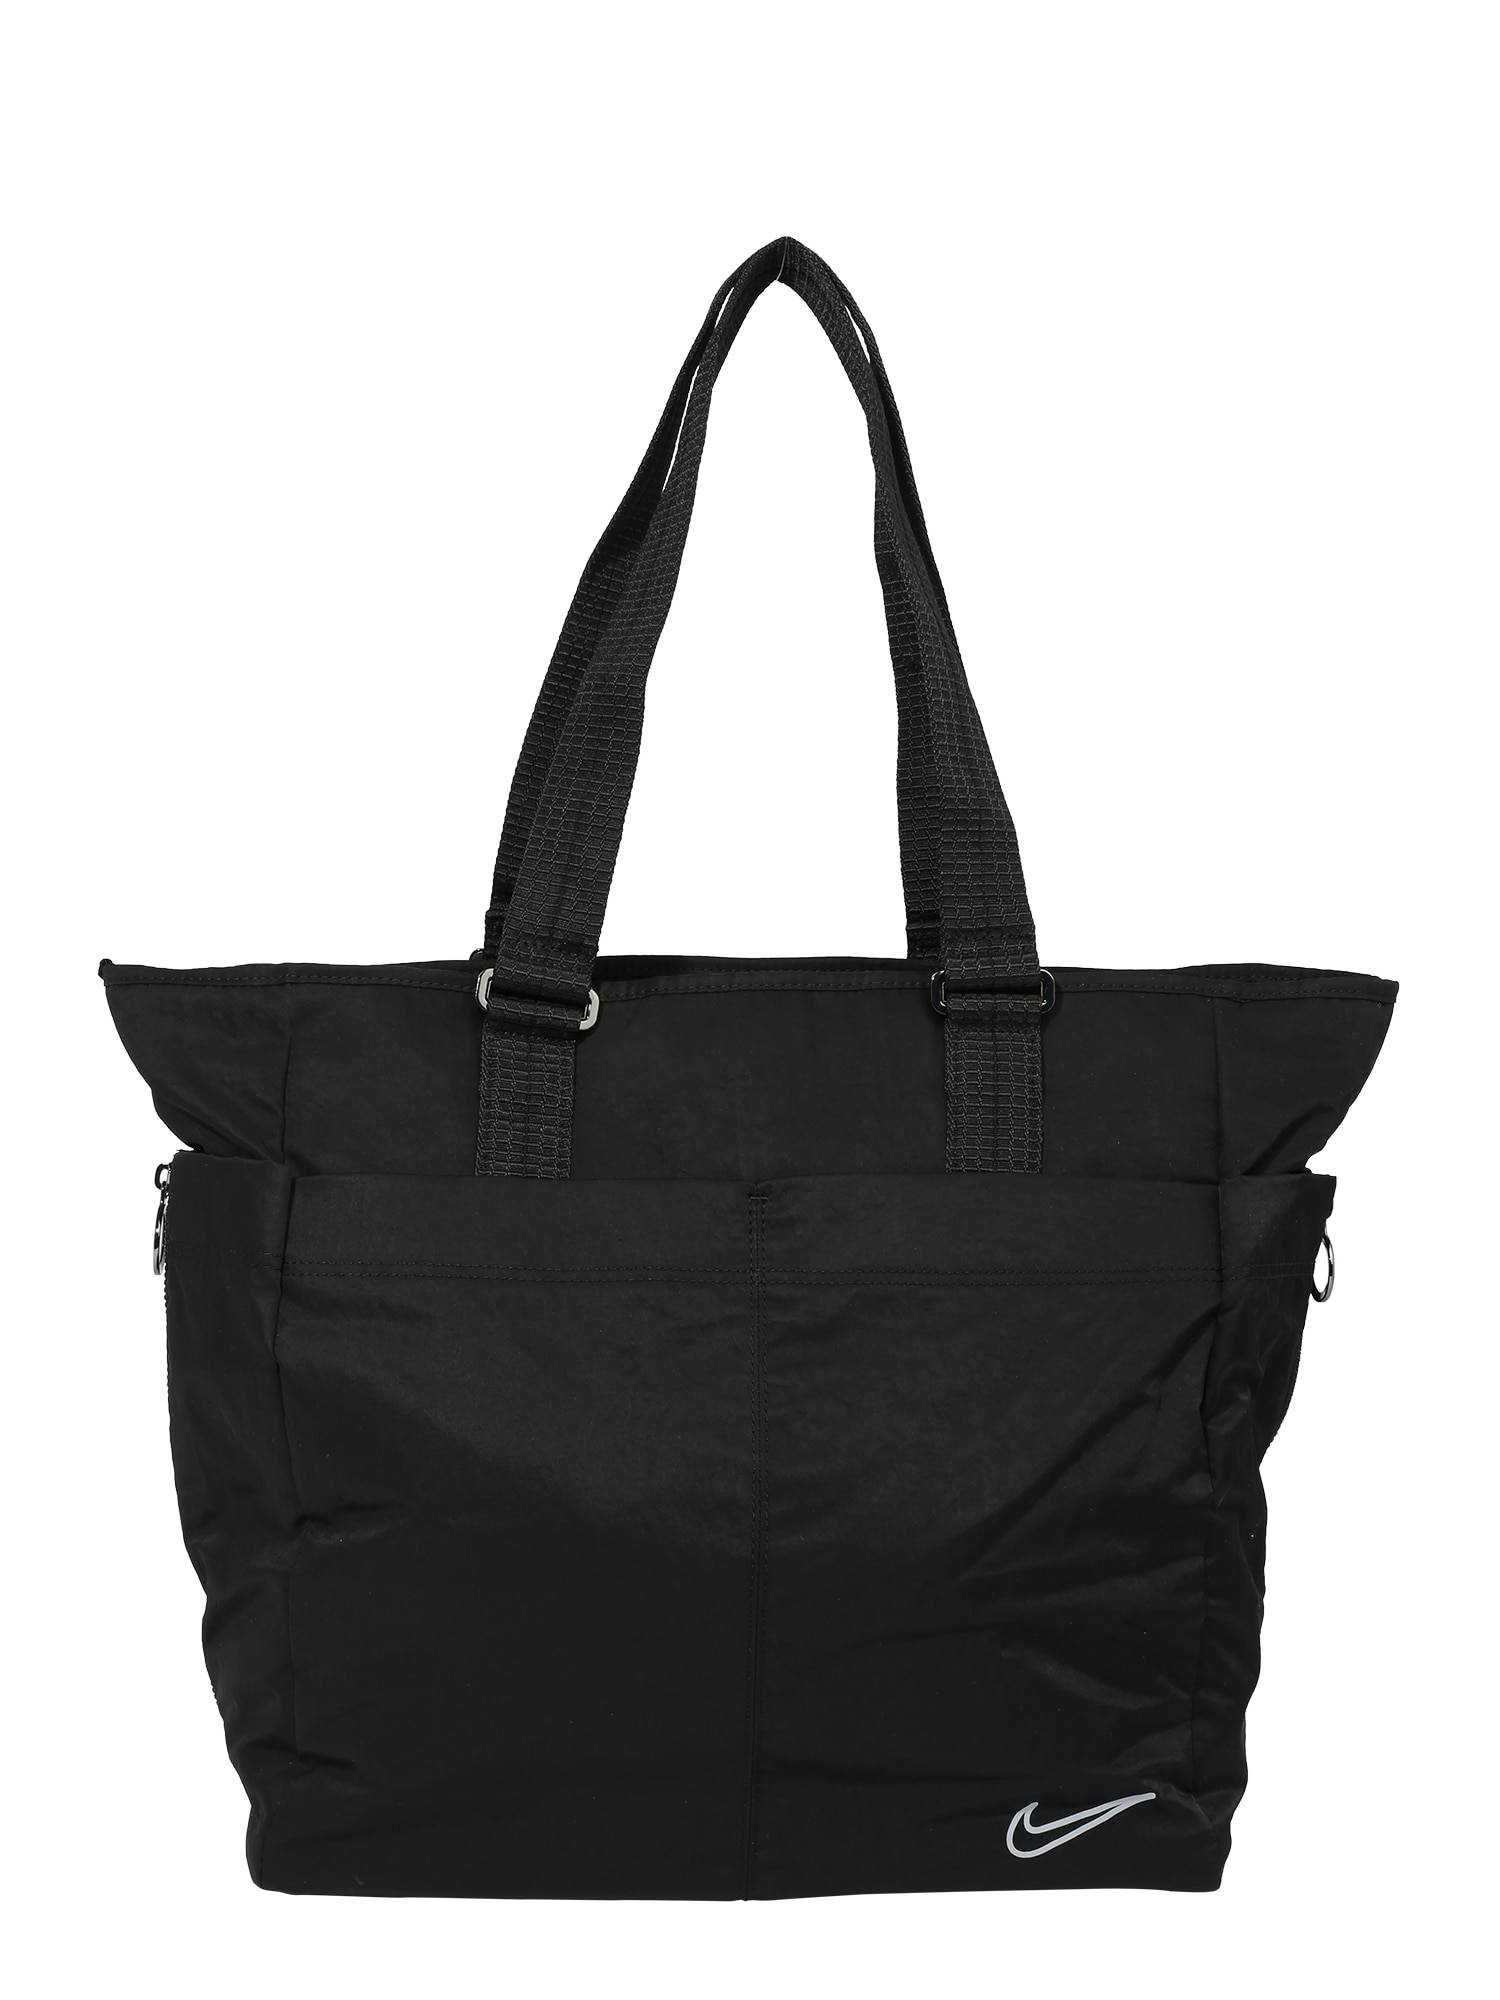 NIKE Sac de sport 'One Luxe'  - Noir - Taille: One Size - female